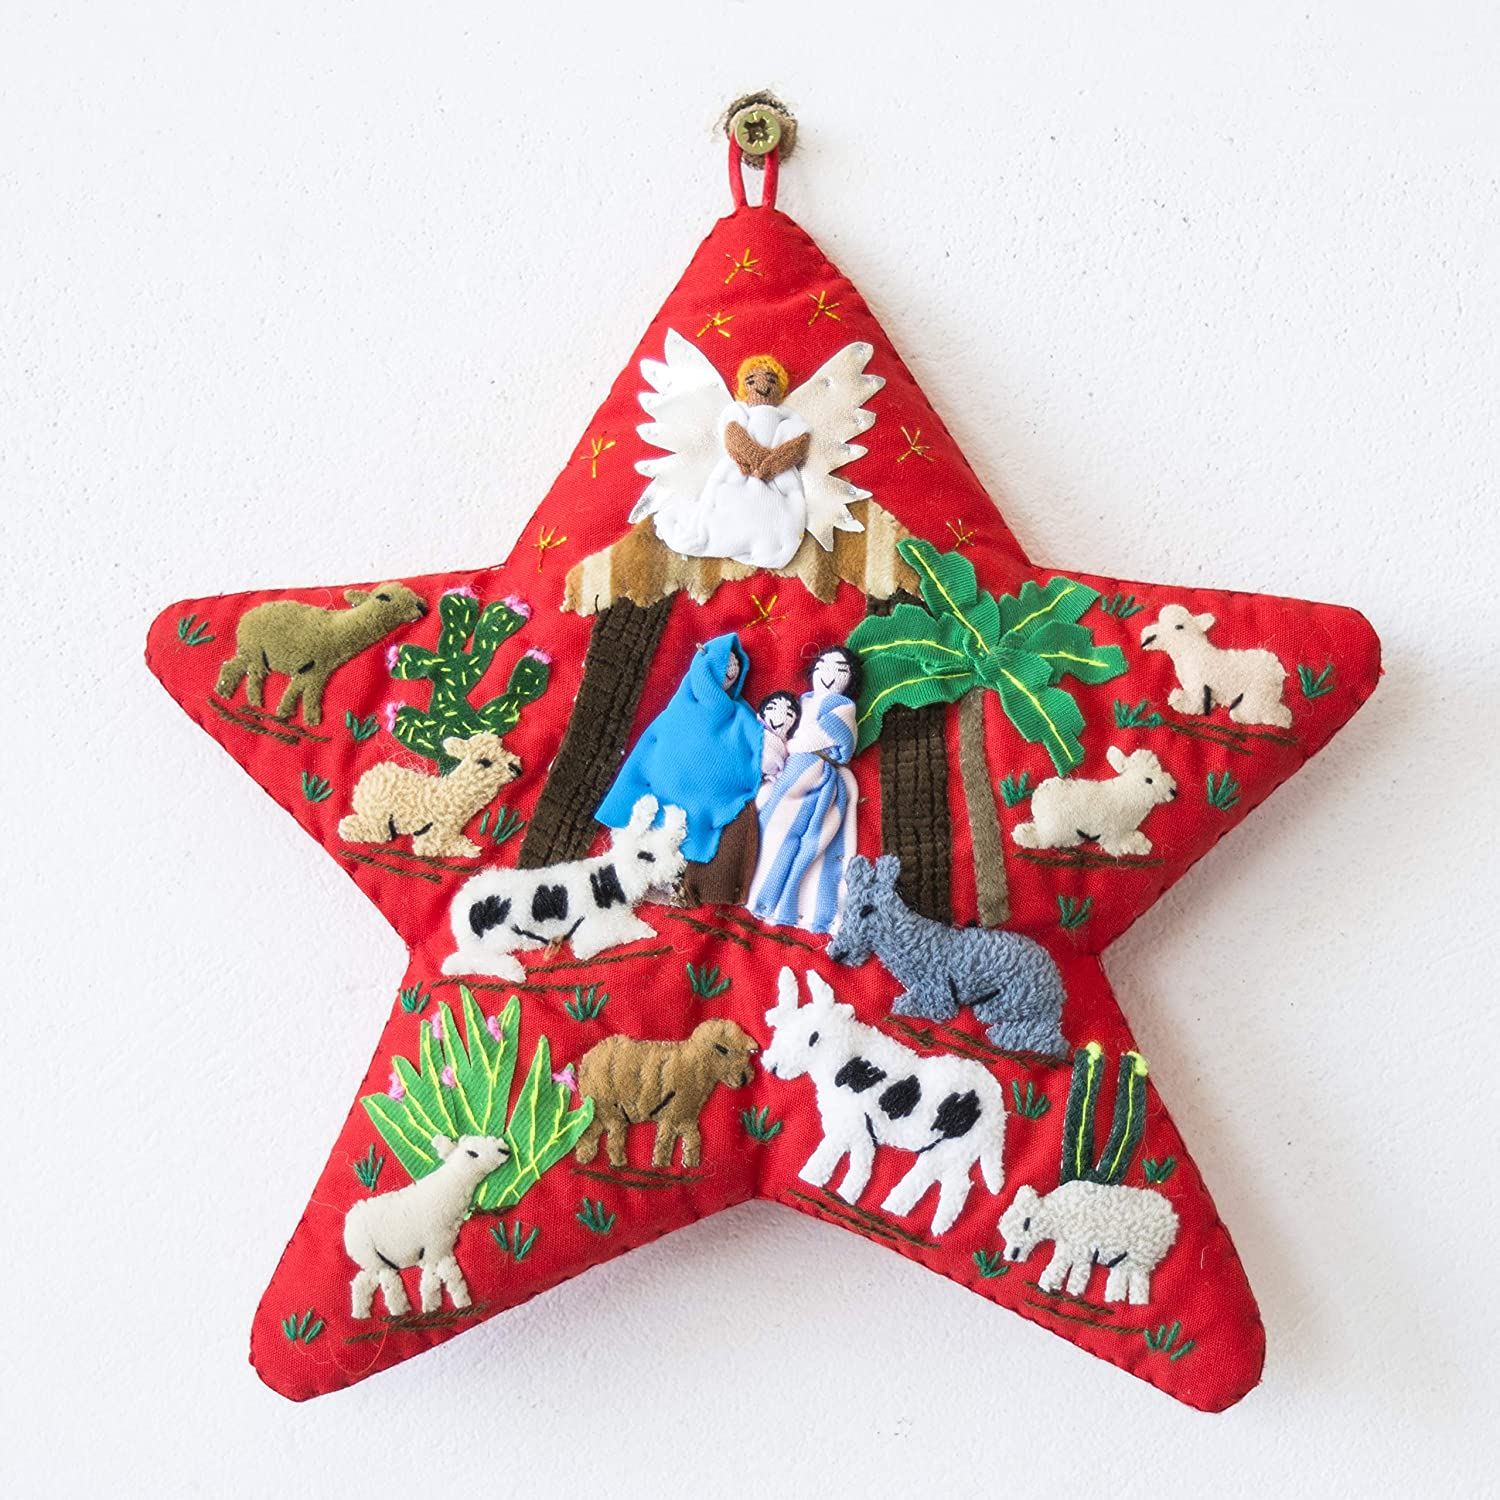 Amazon Com Red Quilted Christmas Wall Hanging 7 8 X7 8 From Peru Star Arpillera Patchwork Christmas Decor Applique Fabric Holiday Wall Decor Nativity Scene Handmade